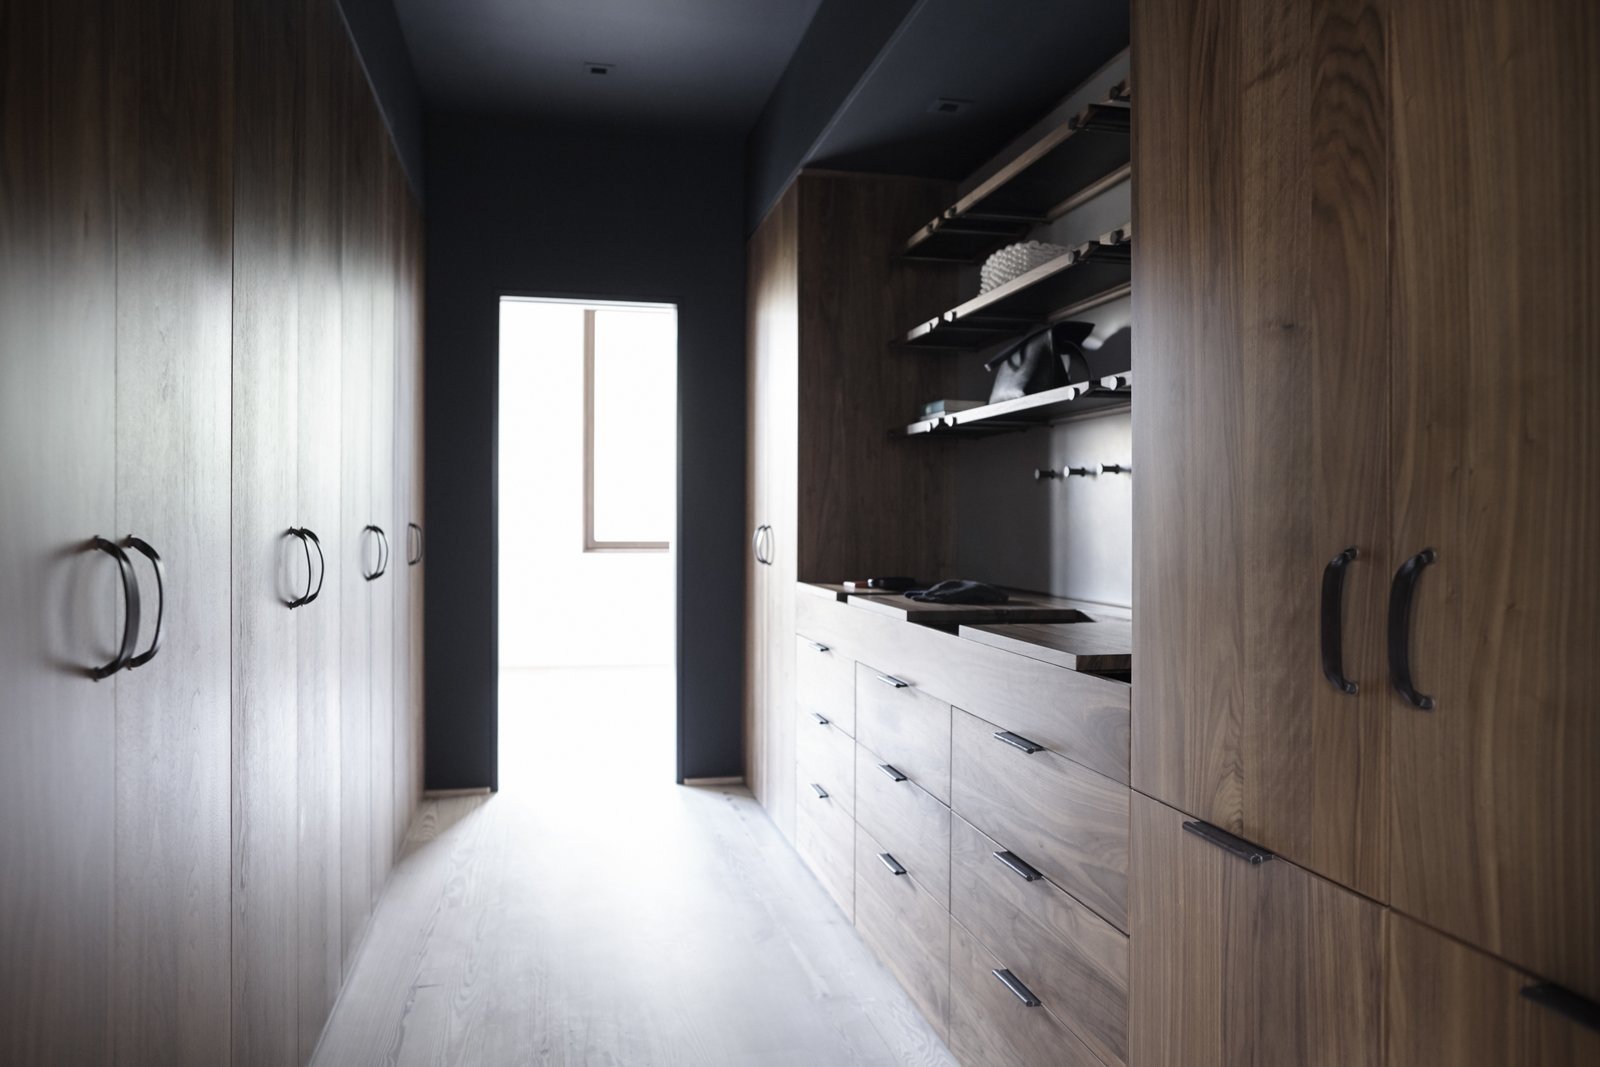 Henrybuilt tailors the Wardrobe System to separate closet functions in a way that meets the needs of the client and the parameters of the architecture. The Whole House System That Unifies Every Room - Photo 9 of 9